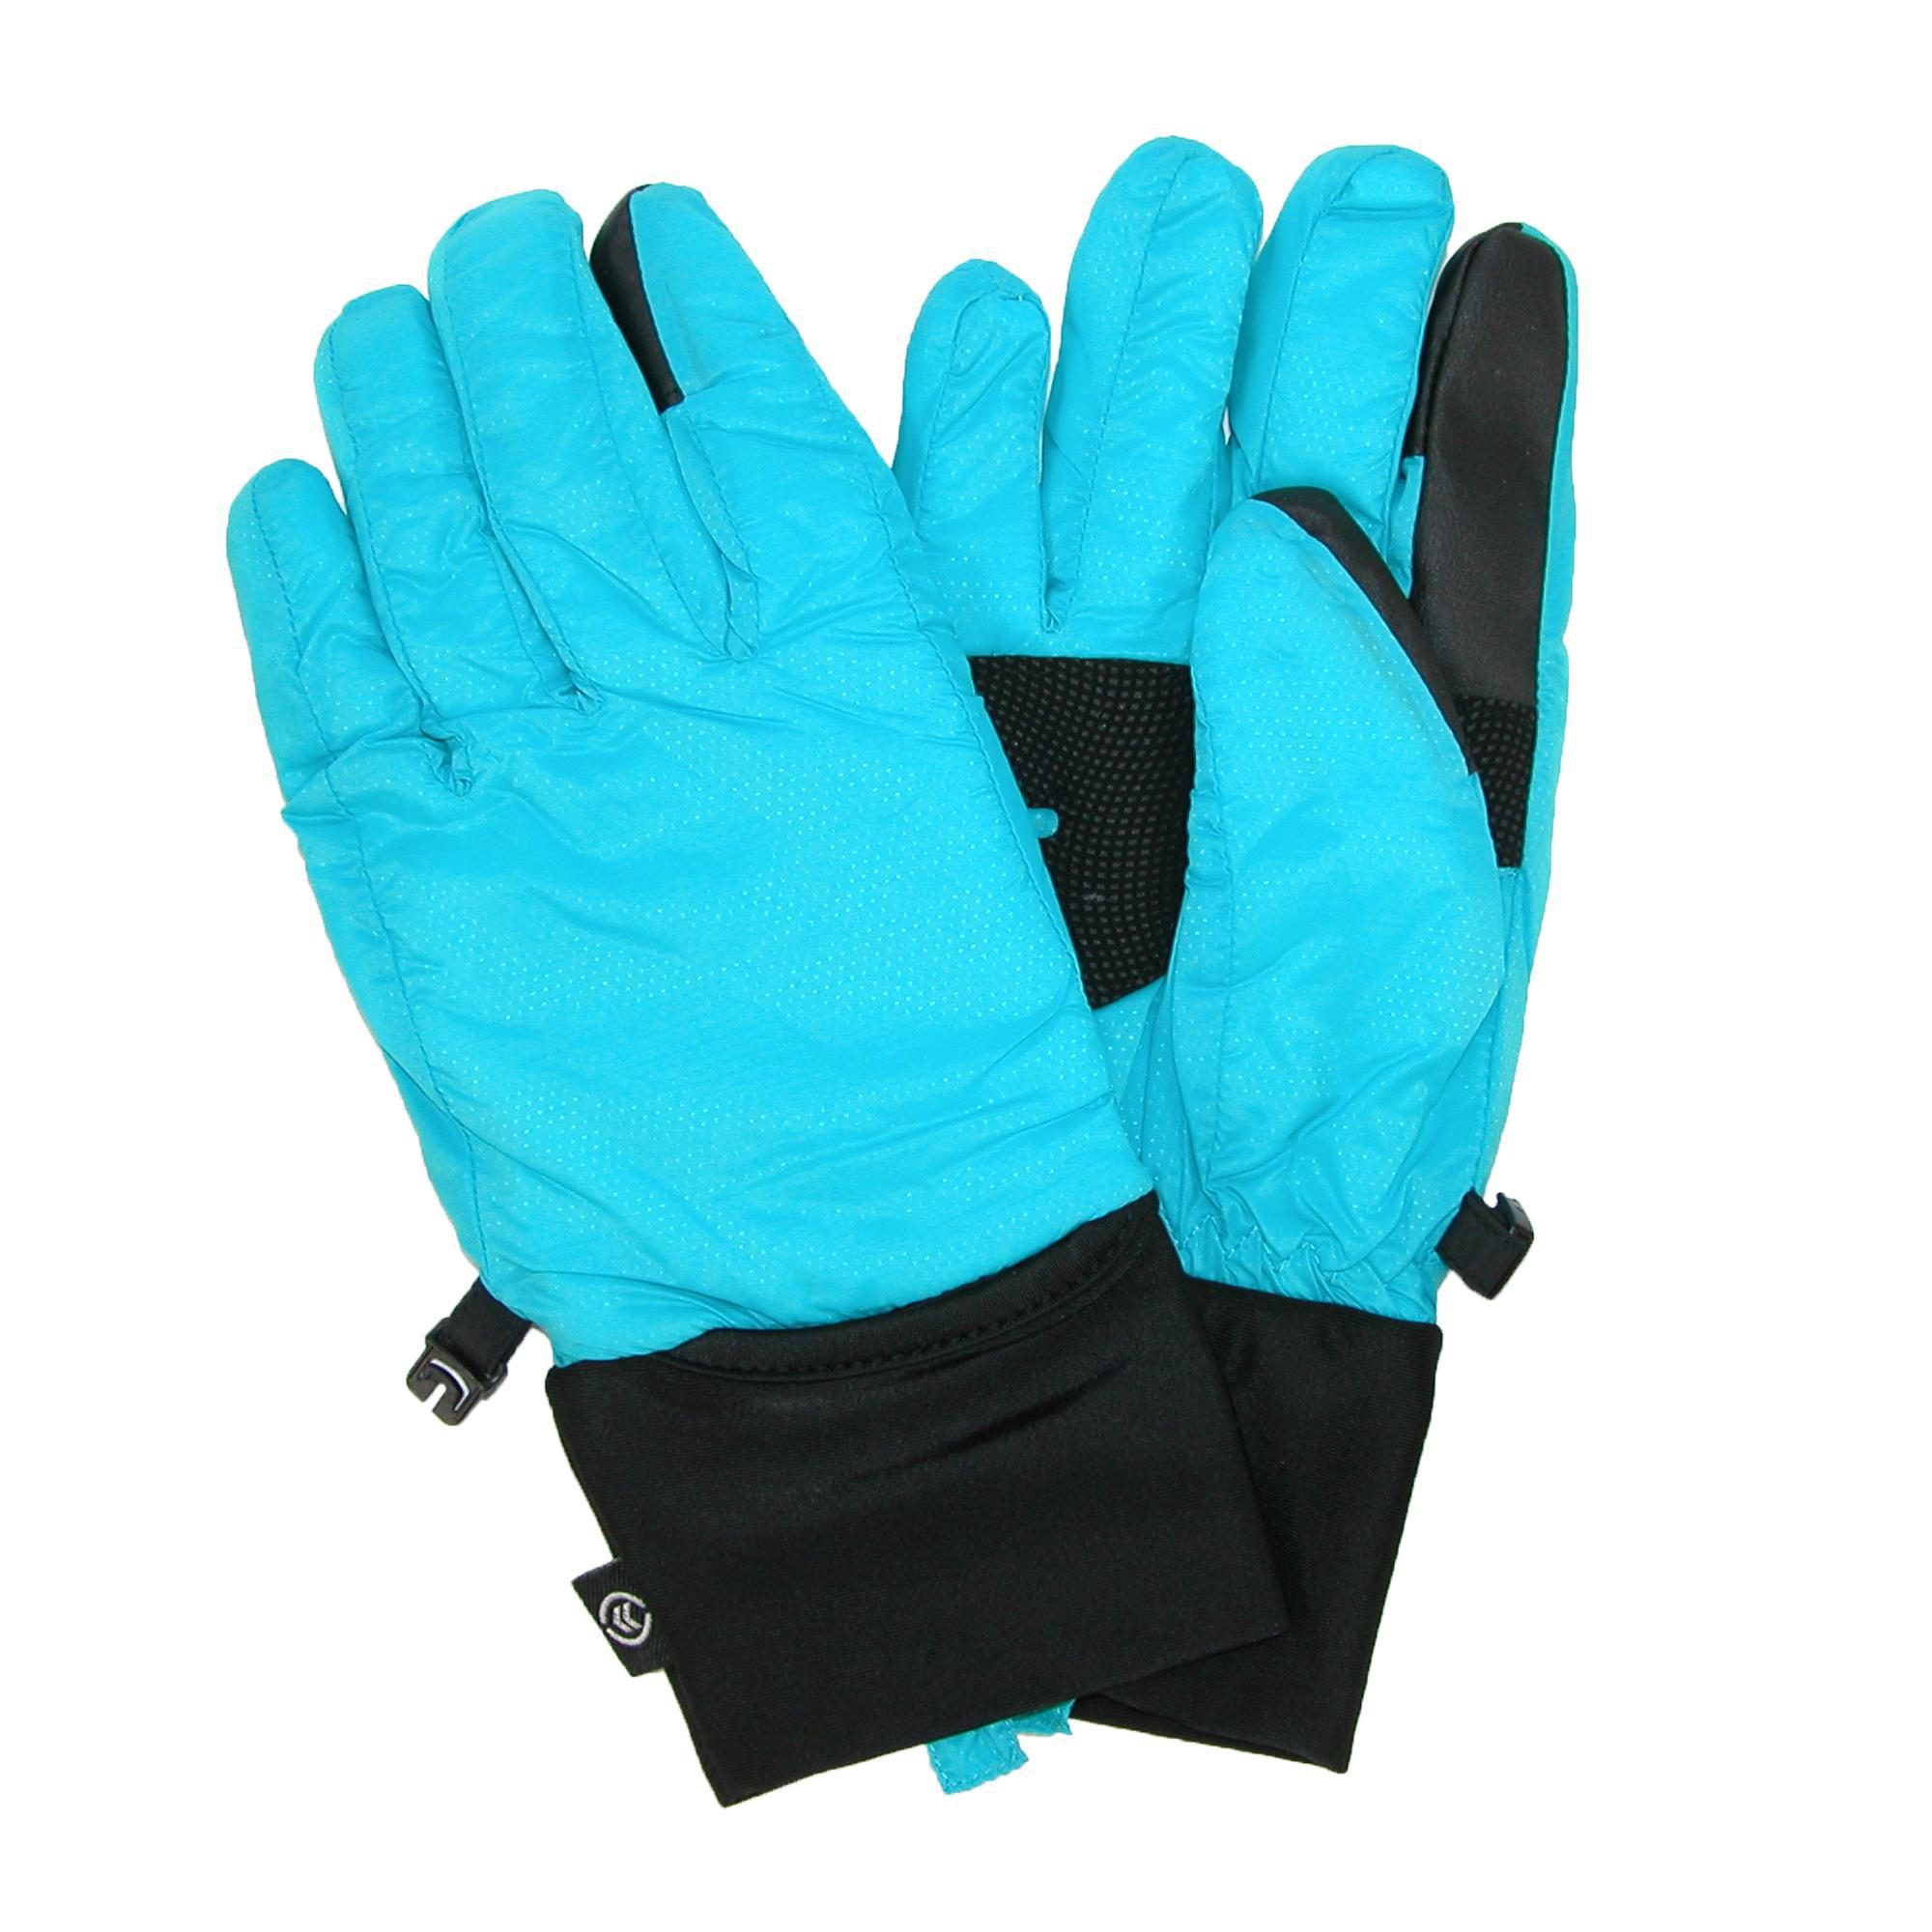 Isotoner Womens Touch Screen Gloves (packs Into Cuffs)